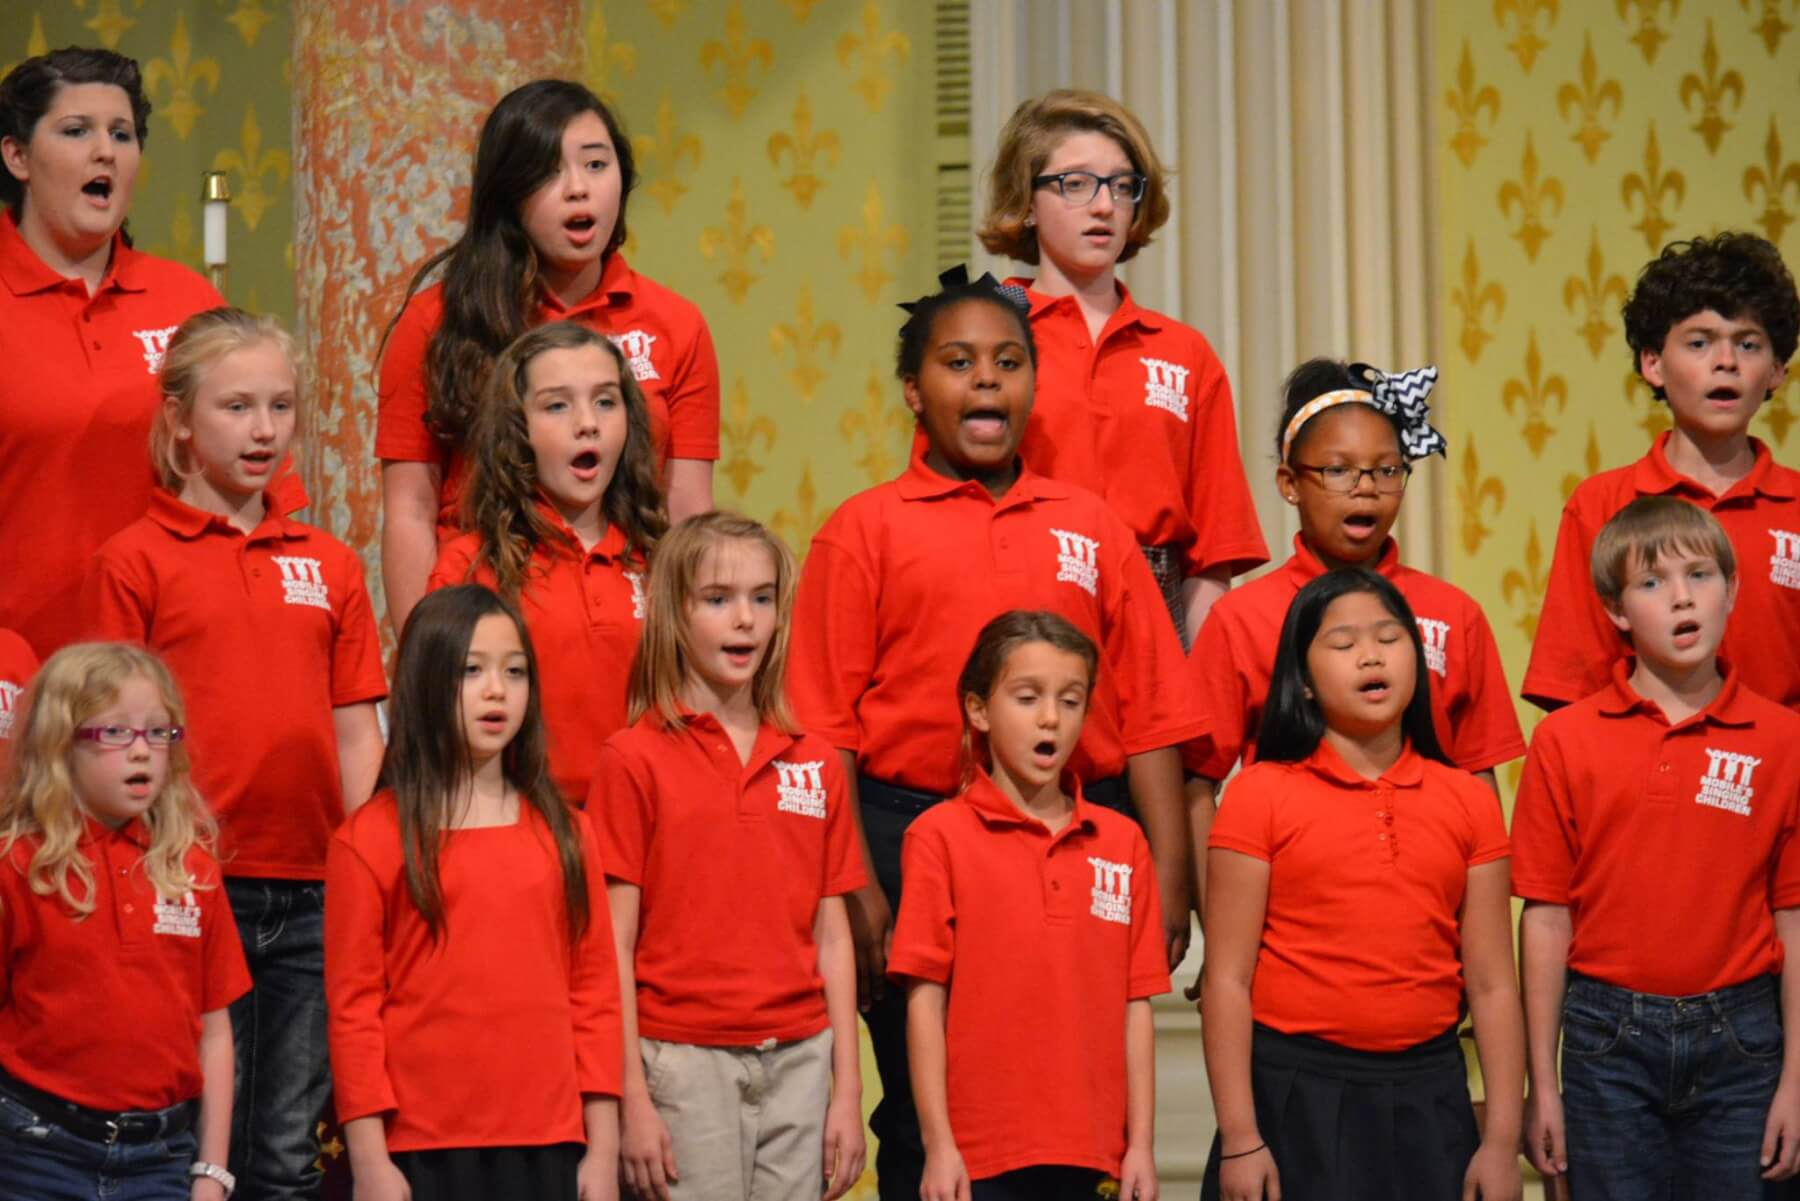 Mobile's Singing Children perform May 9, auditioning new members